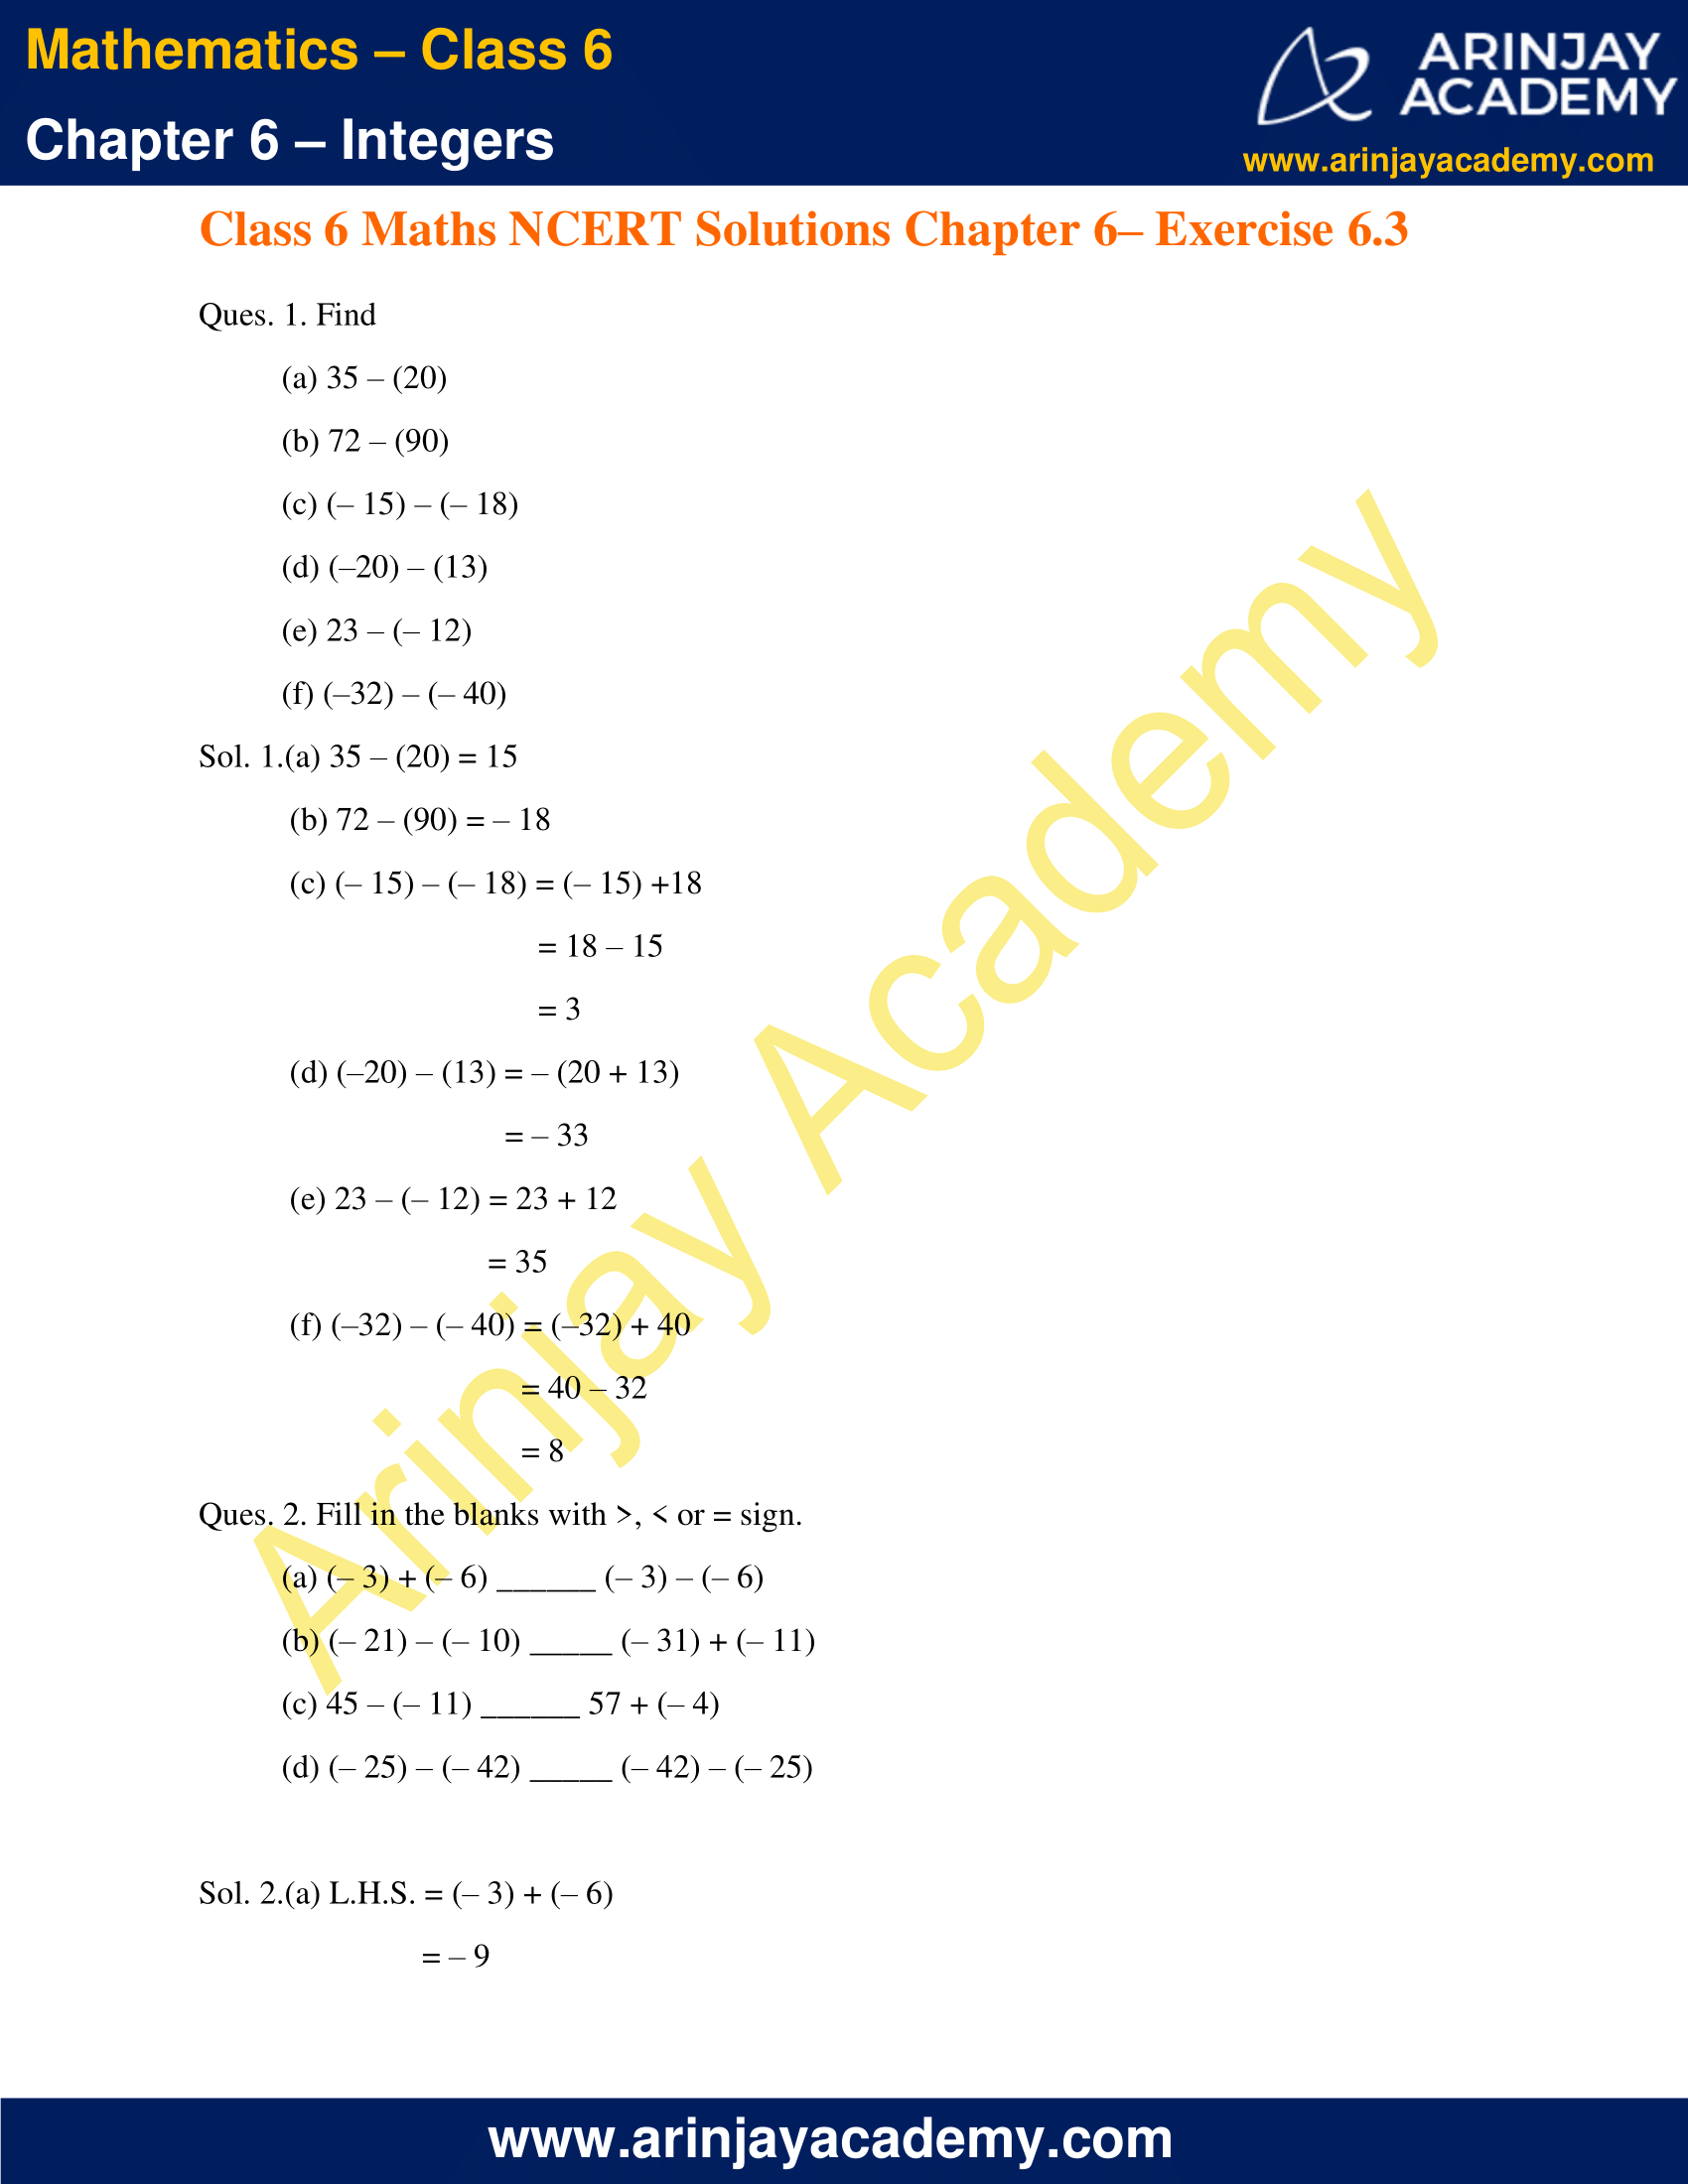 NCERT Solutions for Class 6 Maths Chapter 6 Integers Exercise 6.3 image 1